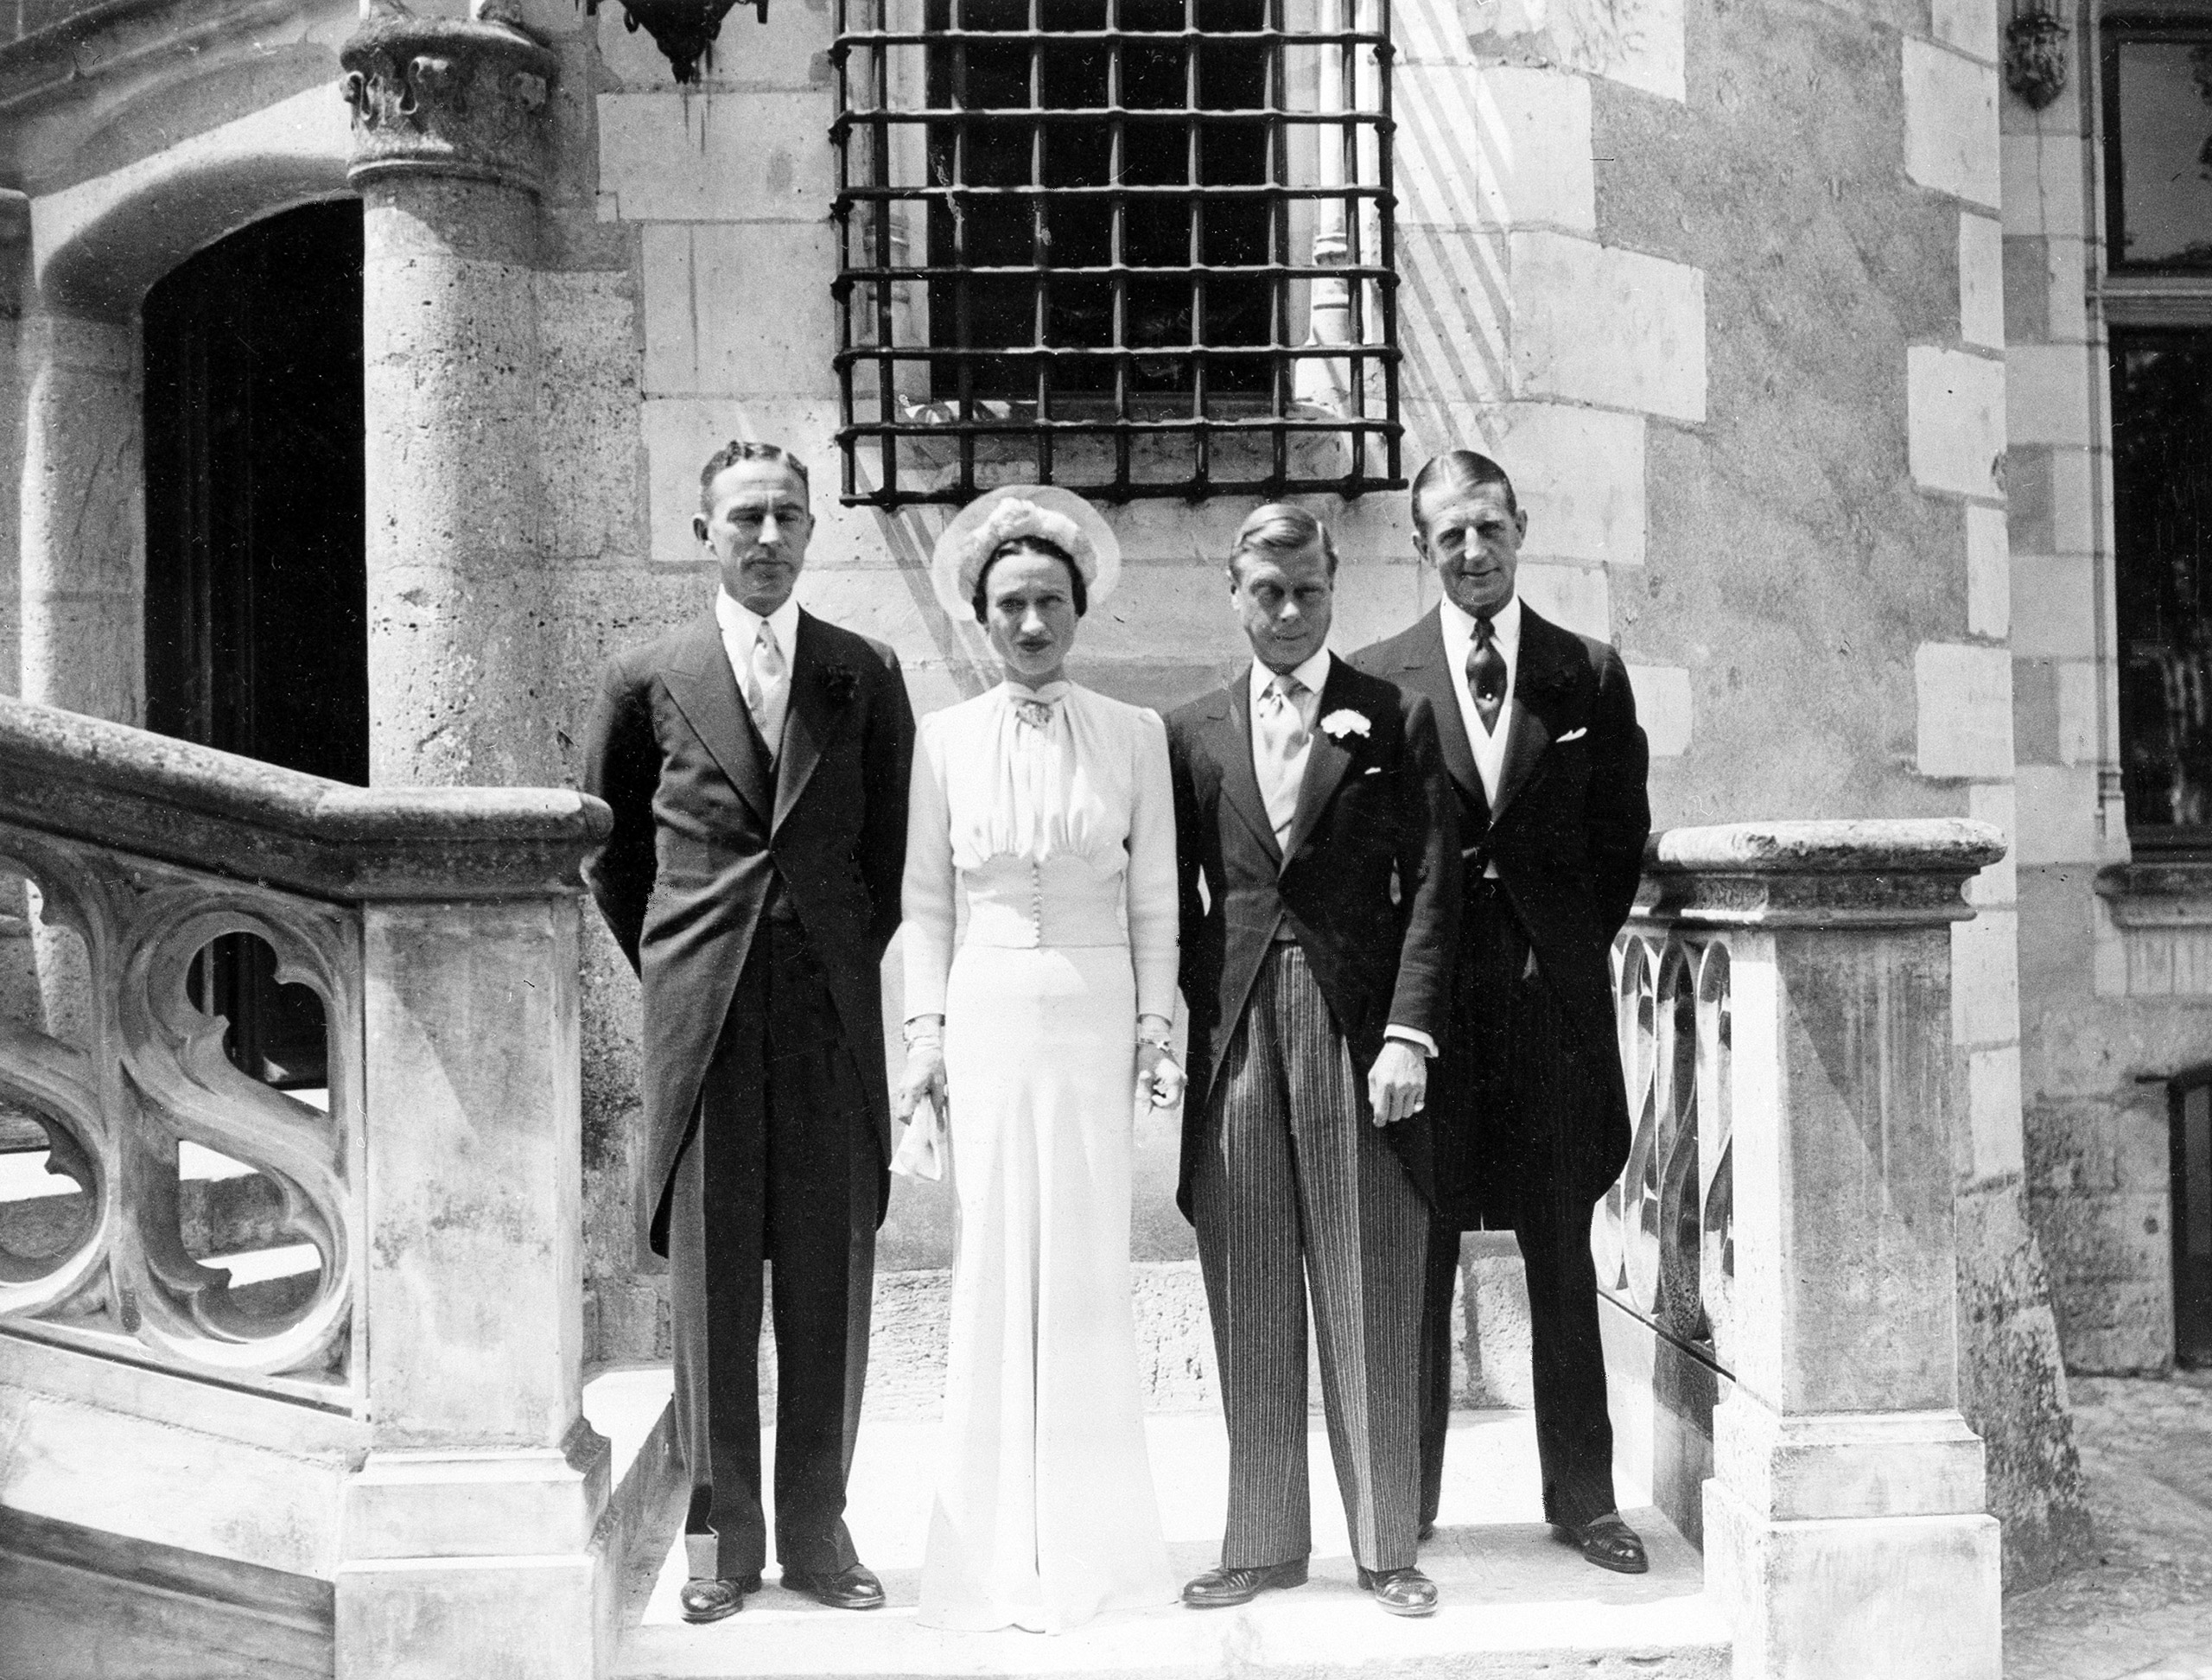 The Duke and Duchess of Windsor pose on the castle steps after their wedding at Chateau de Cande near Tours, France, on June 3, 1937.  At left is Hermann Rogers Winters and at right is Major Metcalf, first former King of England's witness.  The floor-length silk gown worn by the Duchess is designed by Mainbocher.